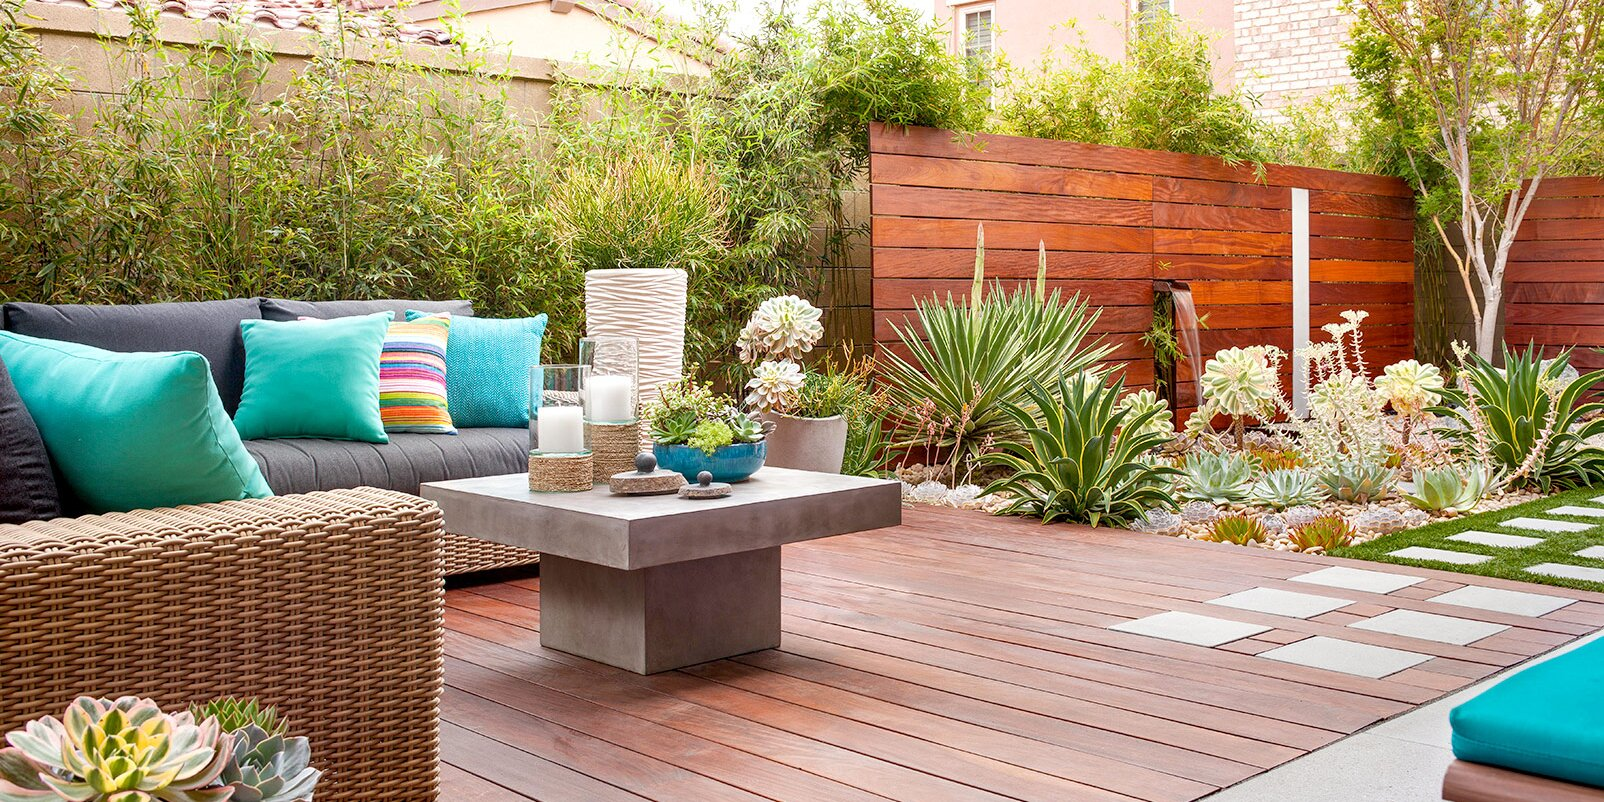 Budgeting Tips to Know Before You Build A Deck   Better Homes & Gardens